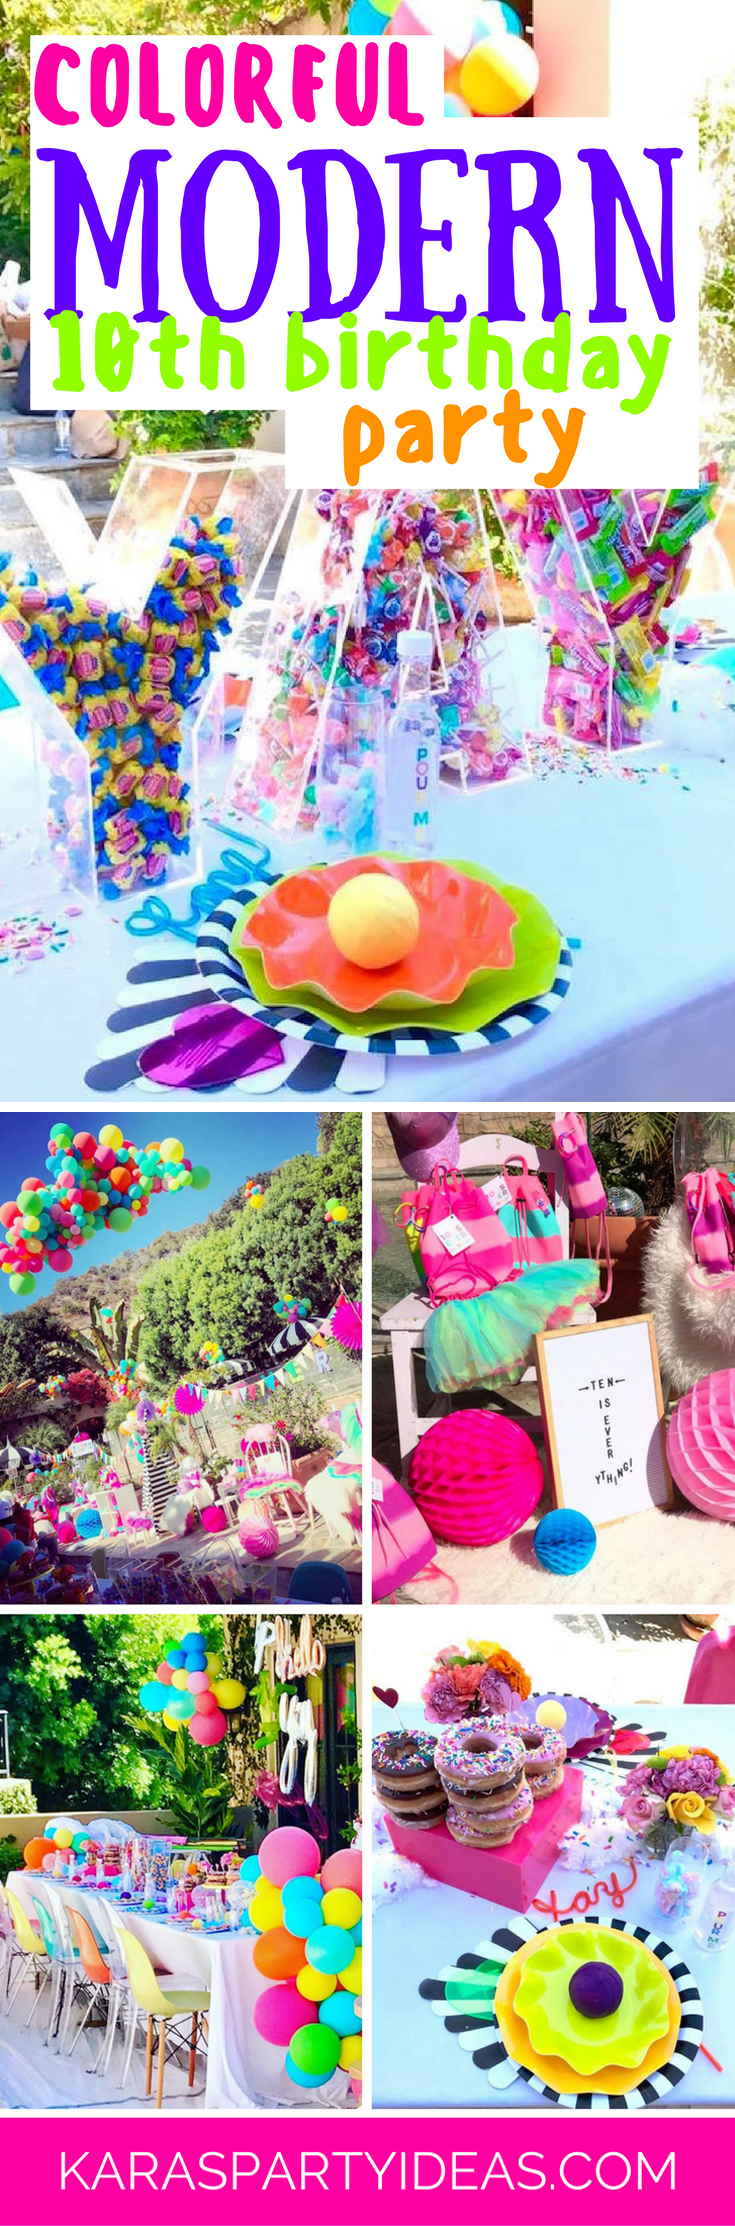 Colorful Modern 10th Birthday Party via Kara's Party Ideas - KarasPartyIdeas.com